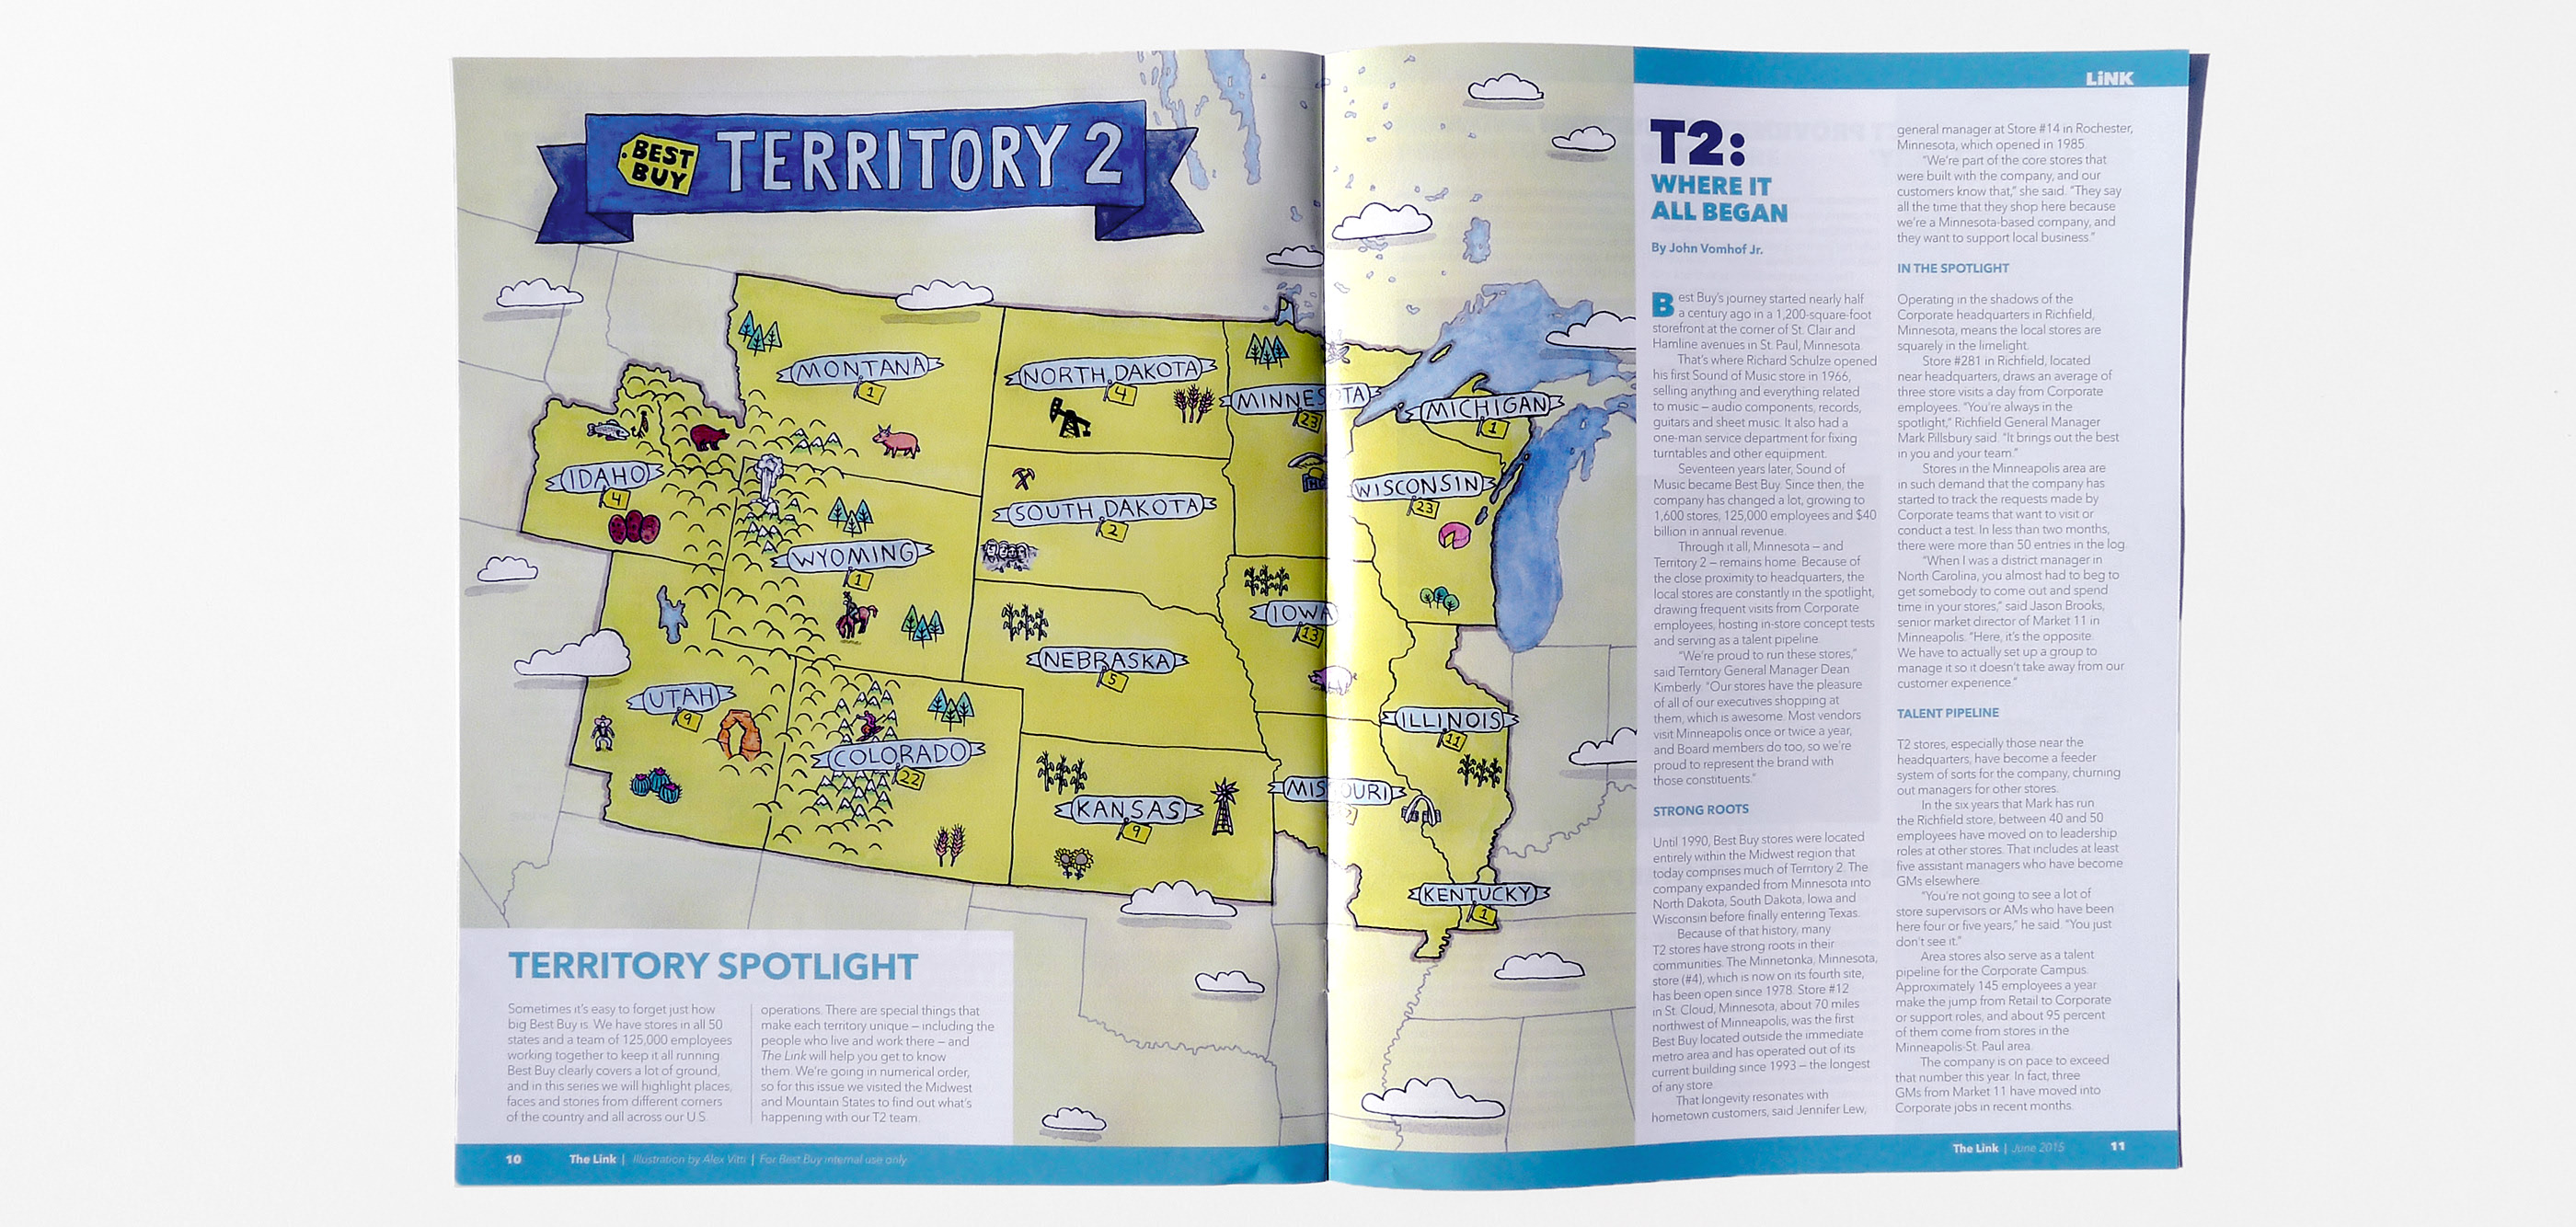 Six Illustrated Territory Maps for Best Buy on Behance on best buy locator, best buy infographic, best buy sponsors, best buy globe, best buy serial, best buy geography, best buy exit, best buy contact, best buy book, best buy store front, best buy 1028, best buy address, best buy graph, best buy electronics, best buy in japan, best buy flights, best buy in china, best buy reviews, best buy fax, best buy store cartoon,